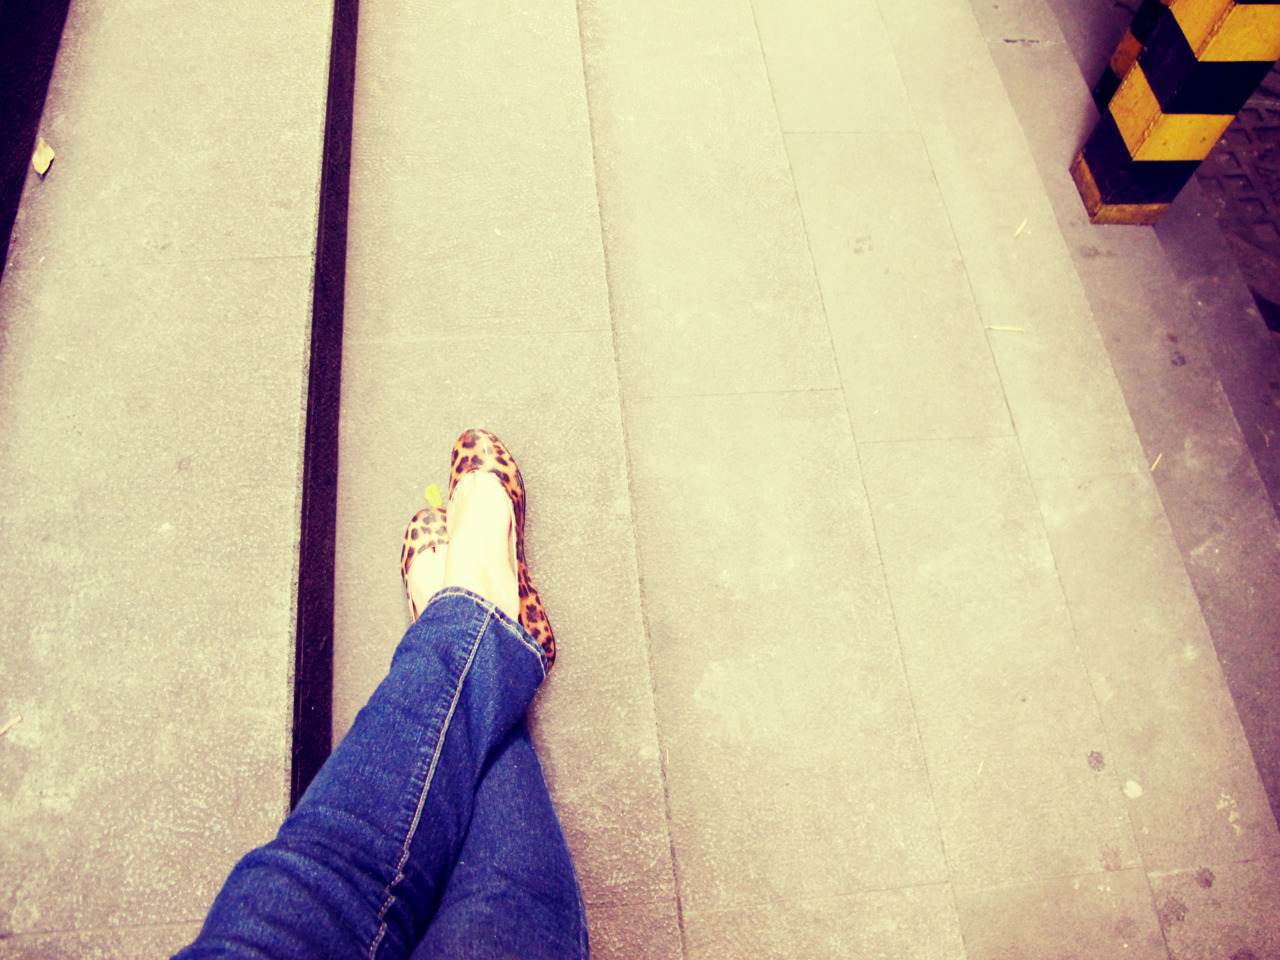 103/366 practically living in my animal print flats lately. Sole Divas, thank you for making amazingly comfy flats (no, they did not ask me to say that)